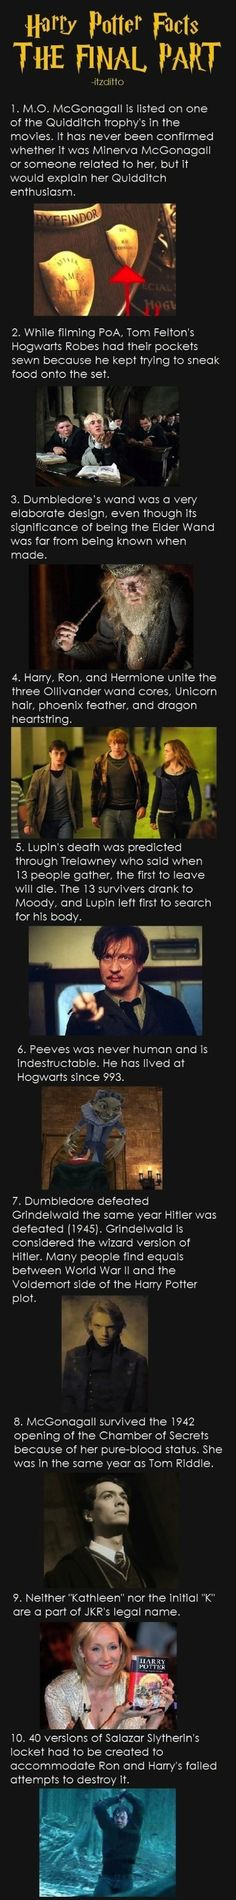 Facts You Didn't Know About Harry Potter Part 1